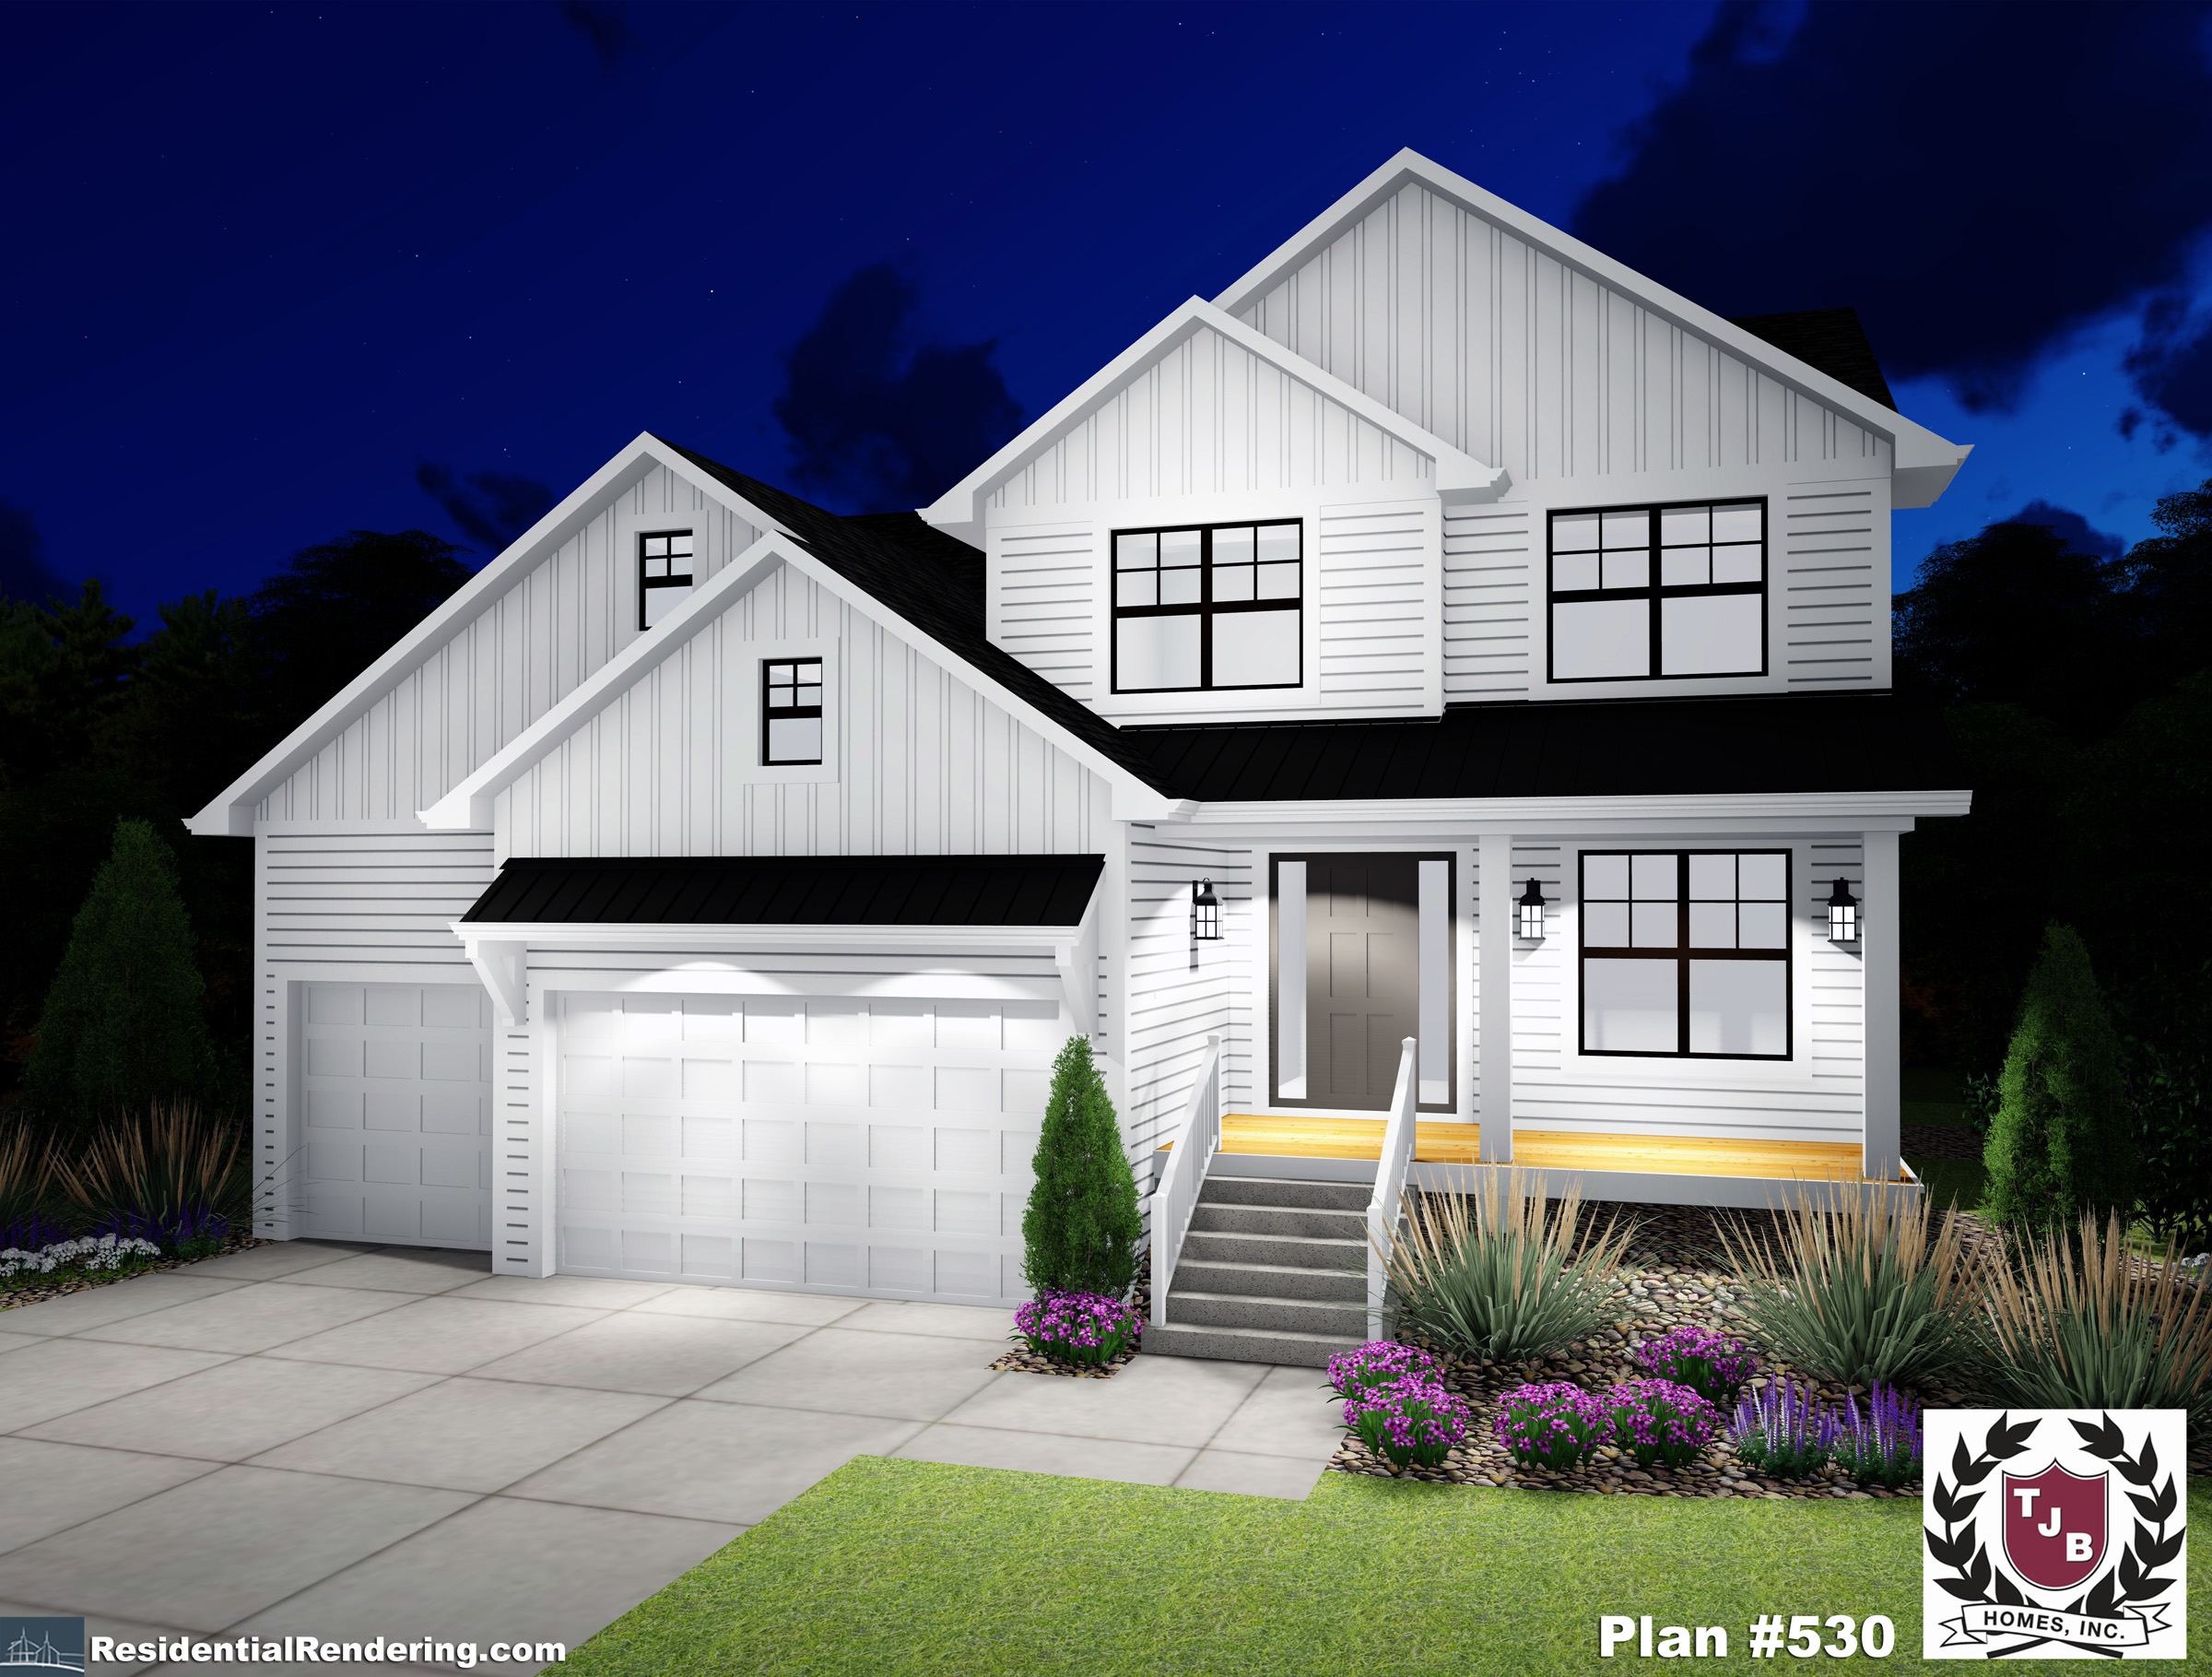 Home Front Plan Color Rendering Night View